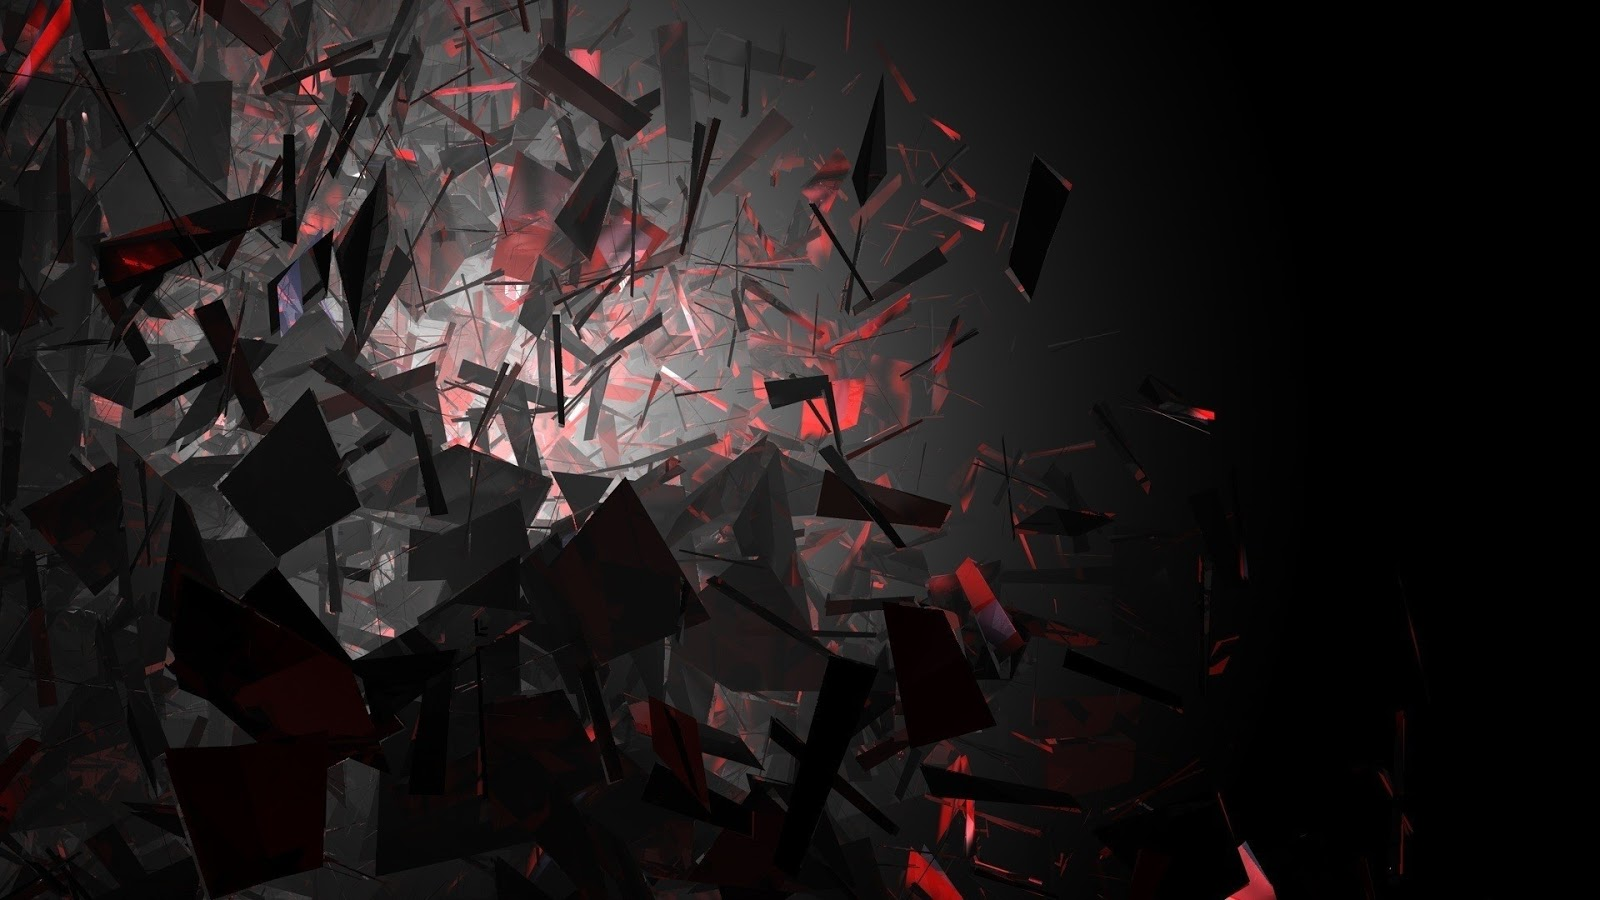 abstract 3d wallpaper 1920x1080 - photo #22